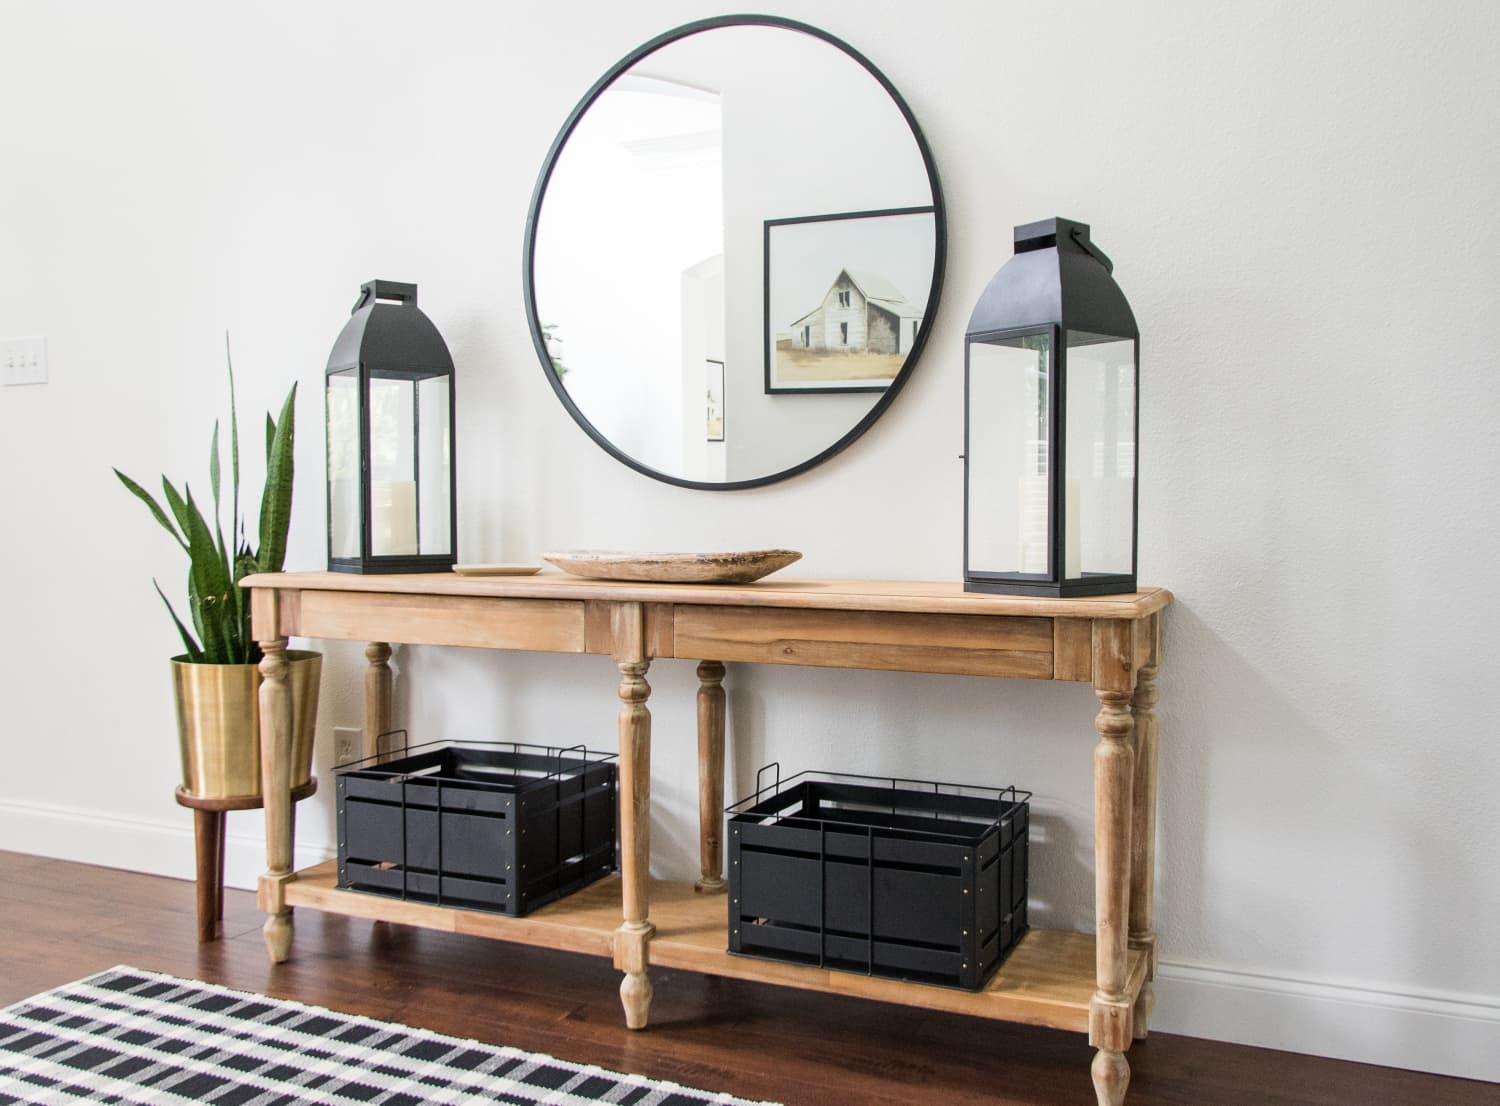 3 Overdone Entryway Trends You Should Stop Trying, According to Home Stagers